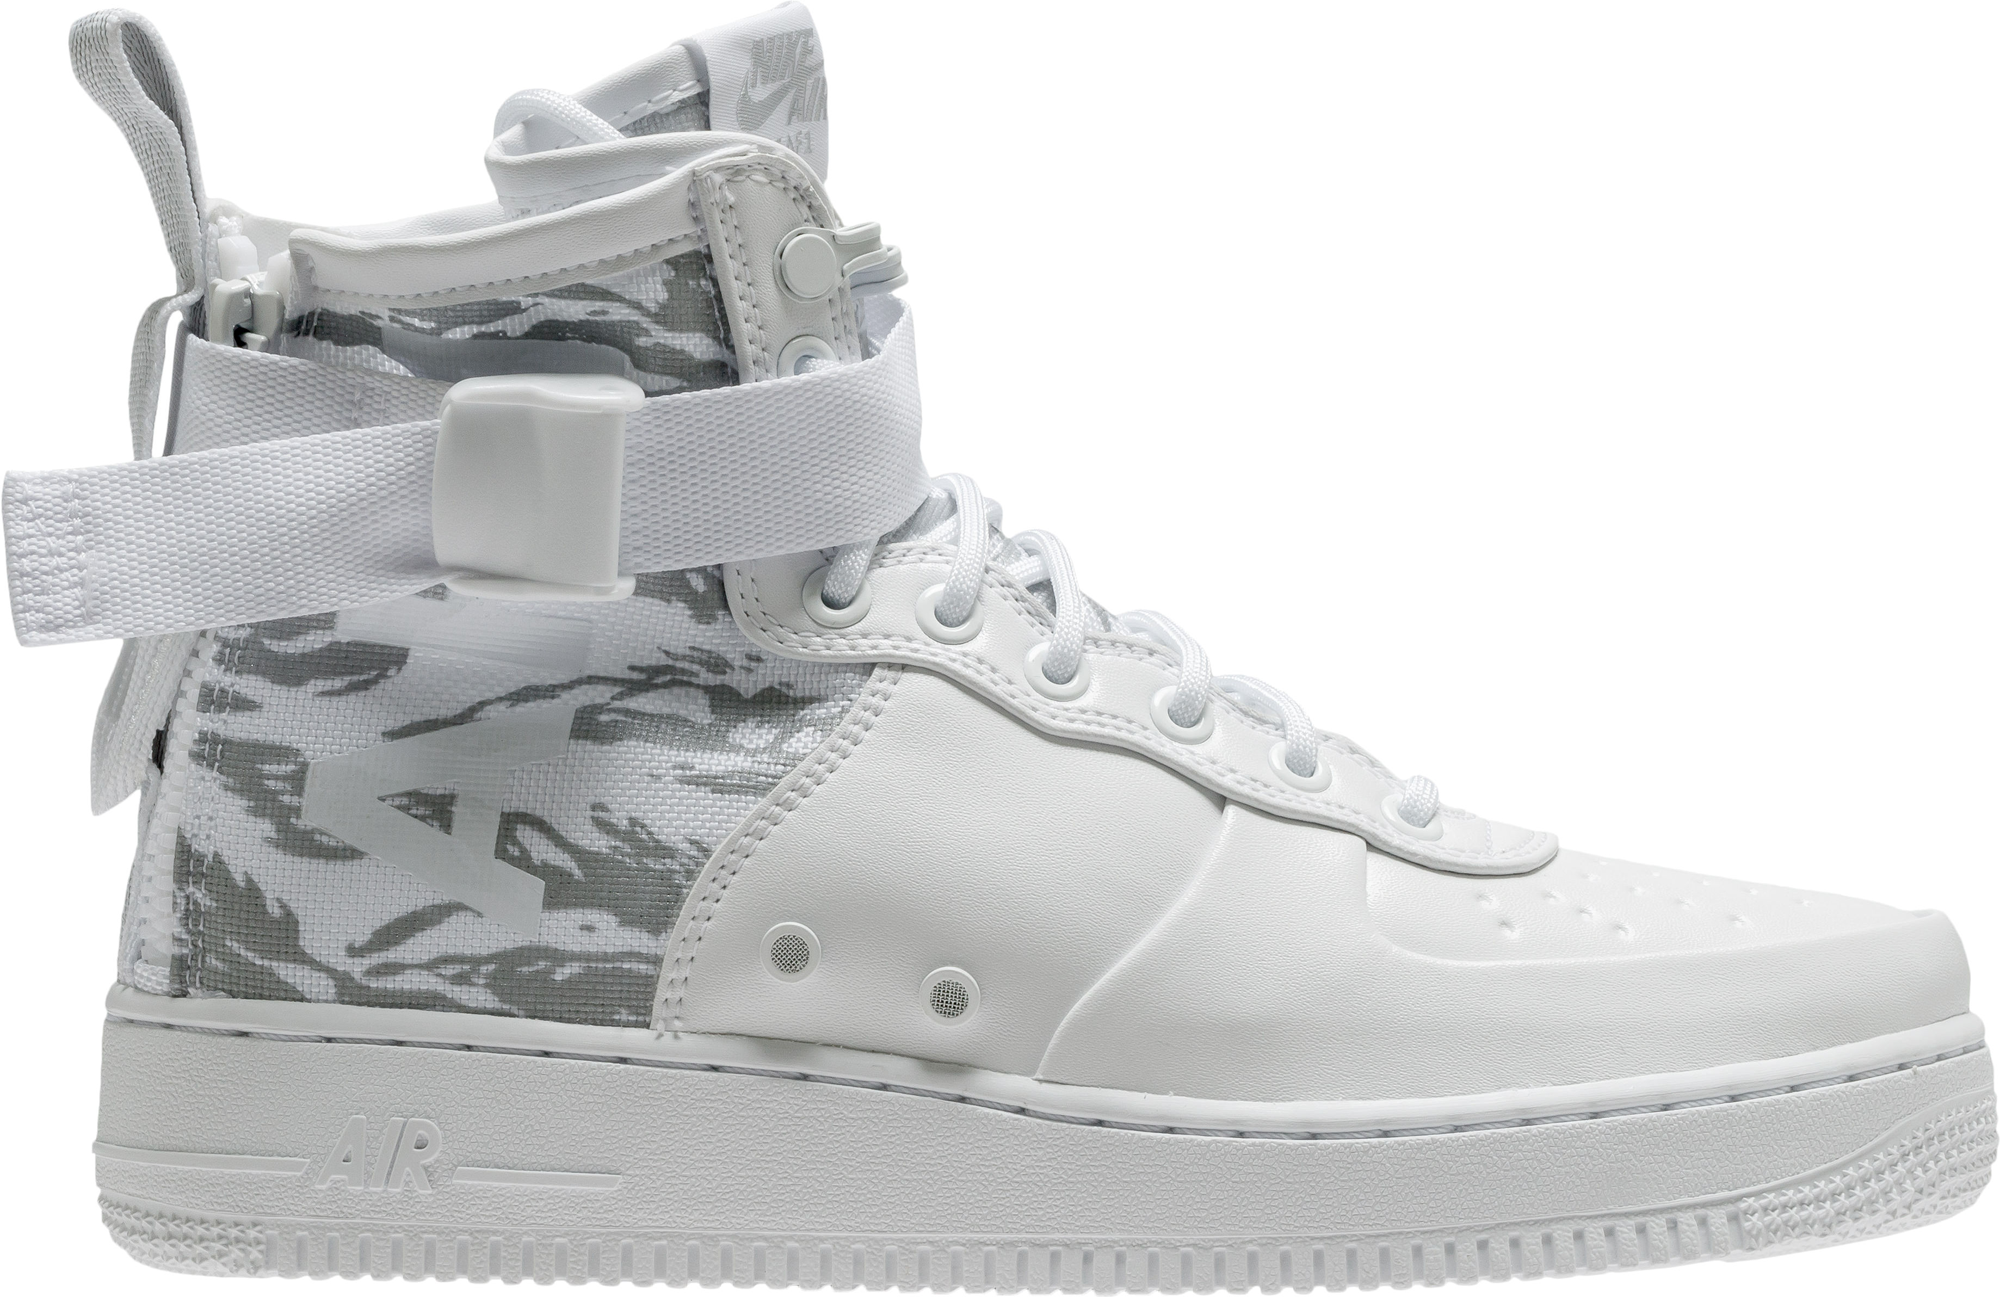 Nike SF Air Force 1 Mid Winter Camo